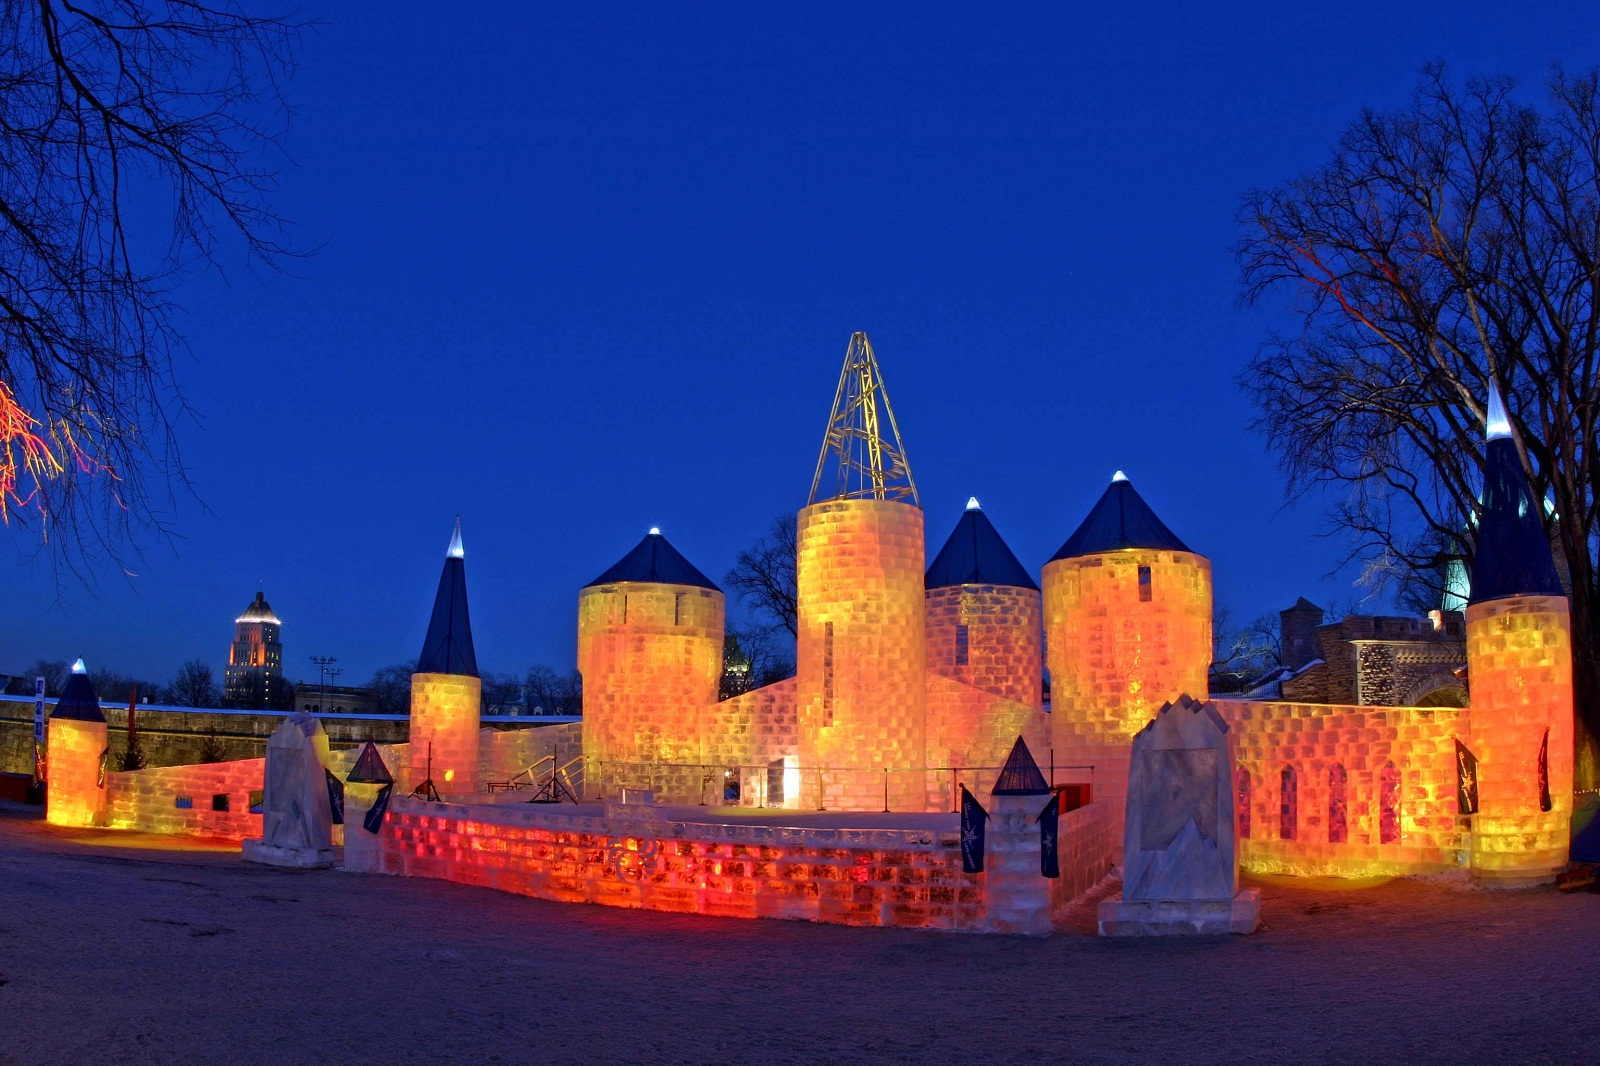 Quebec City, Canada, Ice Palace at night on Winter Carnival